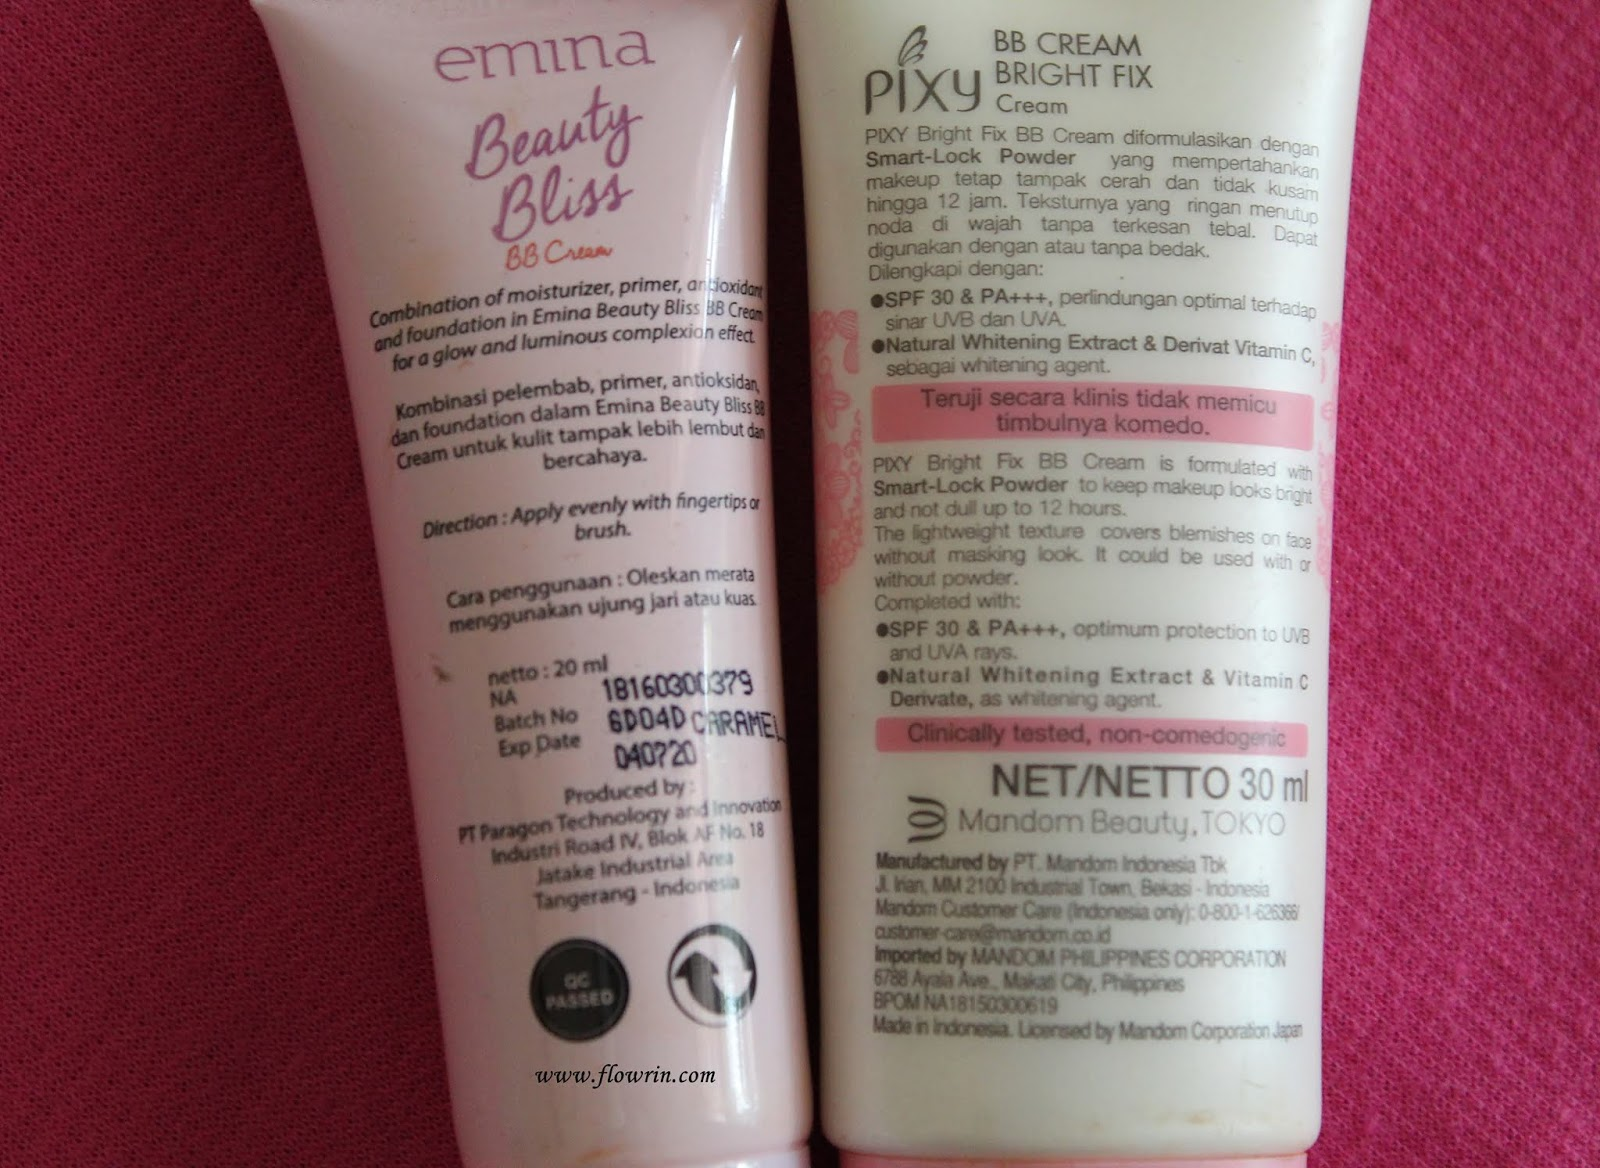 Flowrin's Note: (REVIEW + COMPARISON) Emina Beauty Bliss